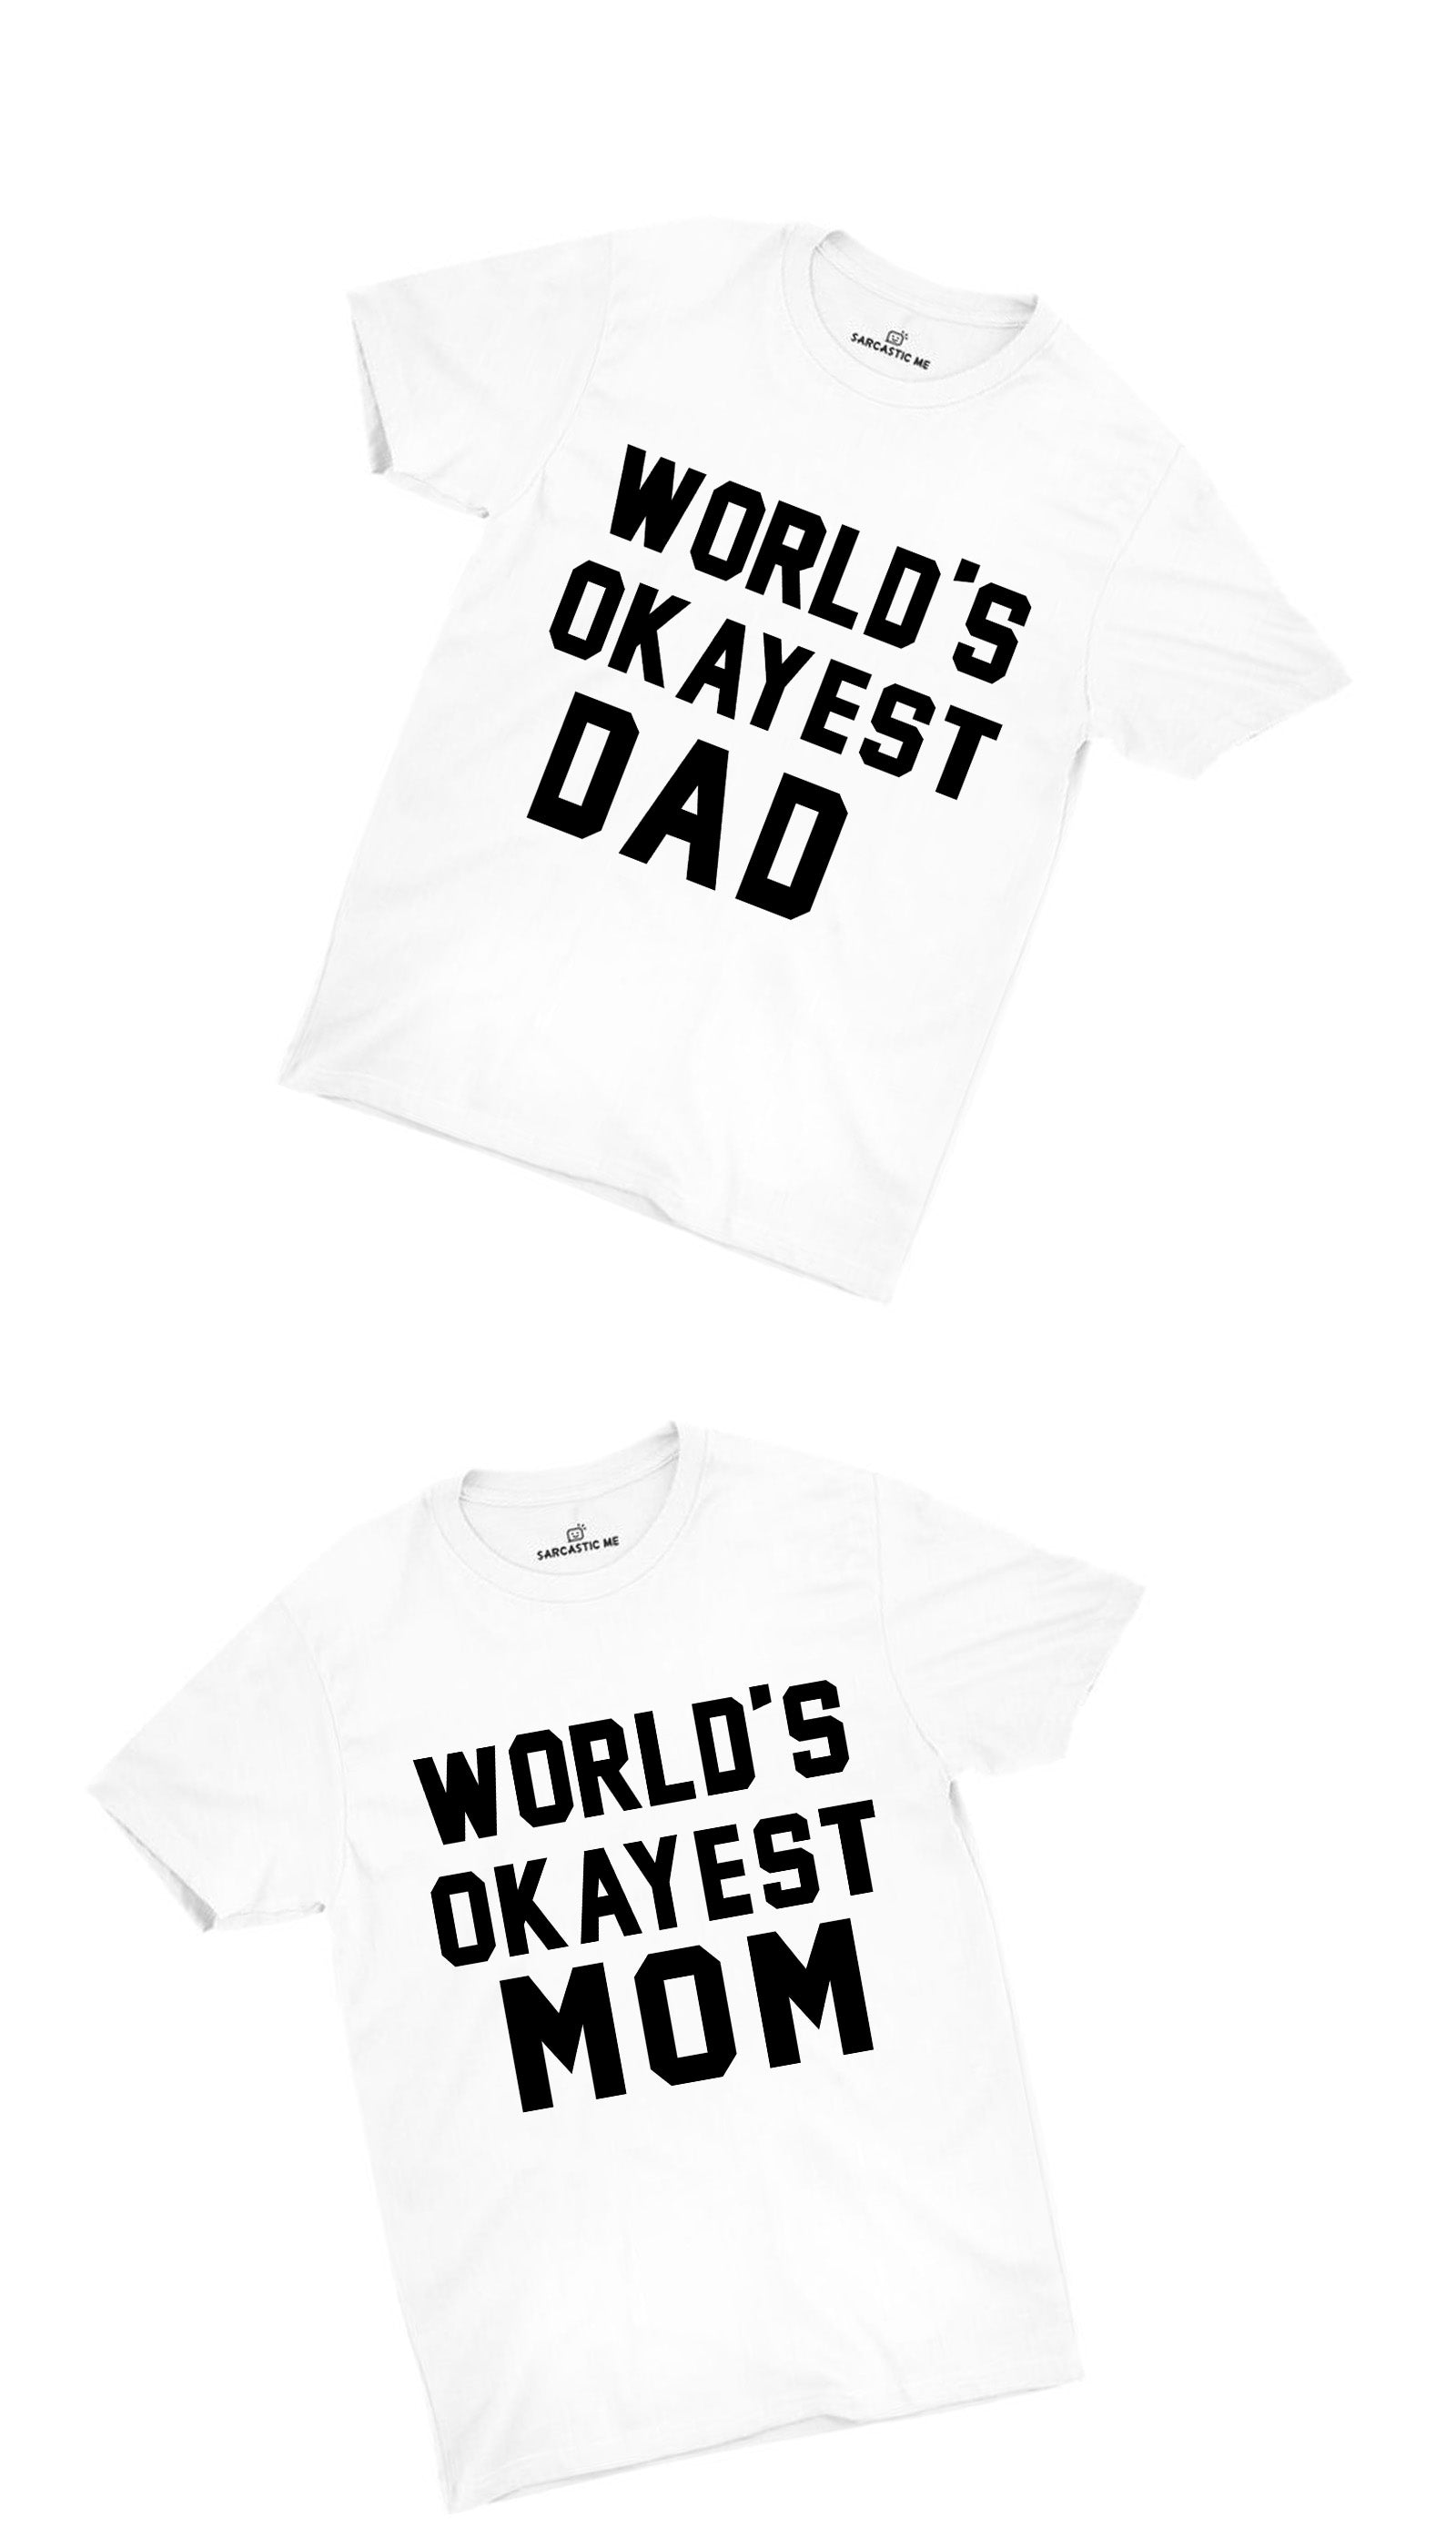 World's Okayest Dad & Mom White Couples Unisex T-shirt Set | Sarcastic ME